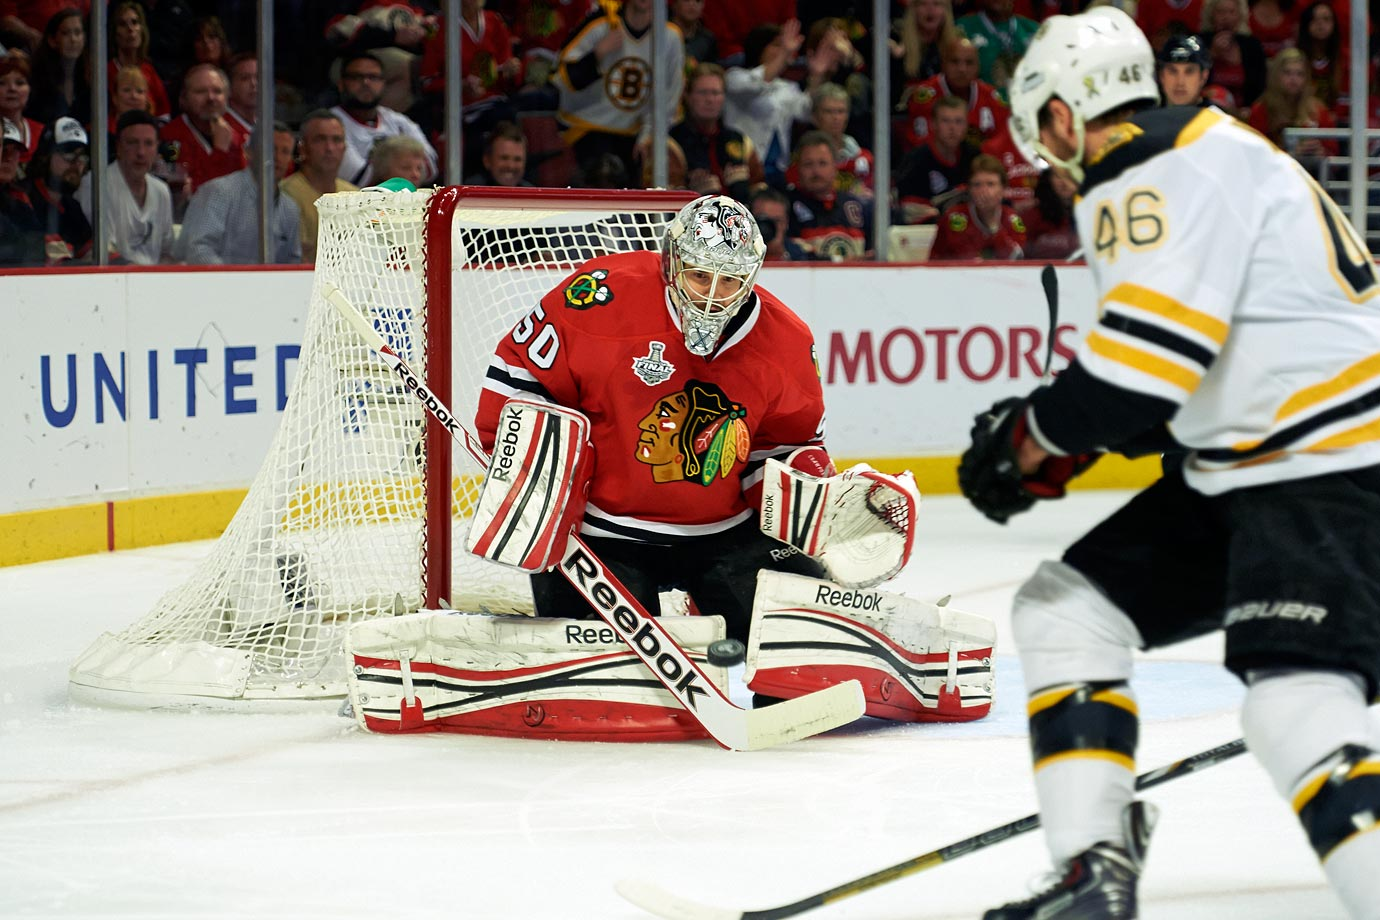 After leading the Blackhawks to two Stanley Cups in the past three seasons, and claiming a pair of Jennings Trophies along the way, Crawford has turned a spare training camp number into one that young goalies are clamoring for.